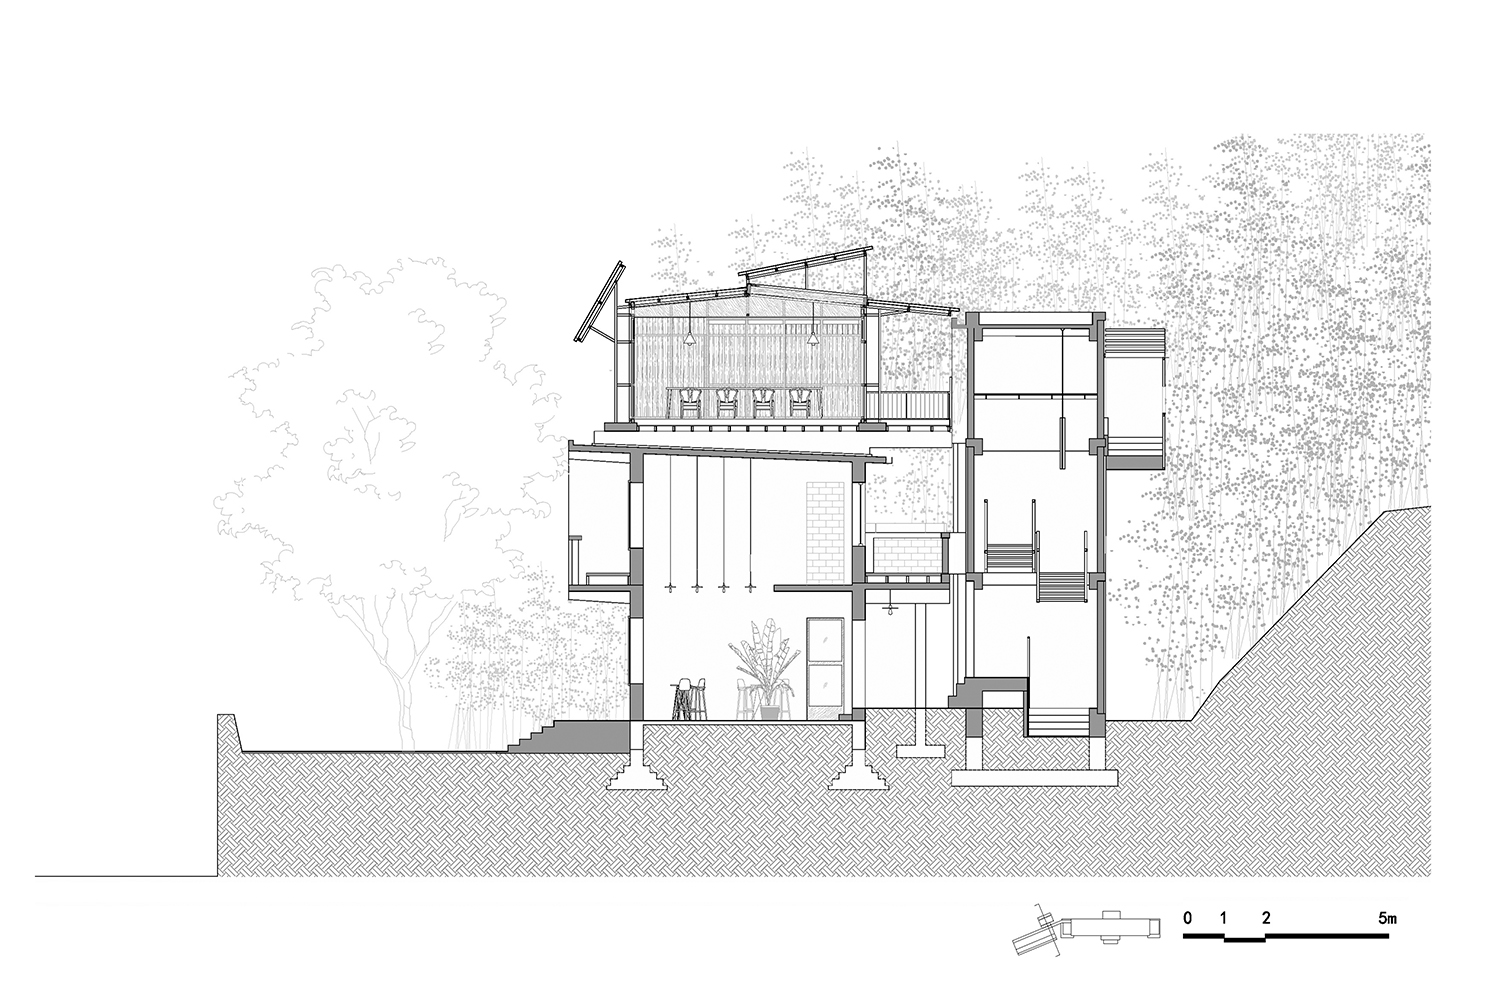 Section of the Annex Building Atelier XUK}